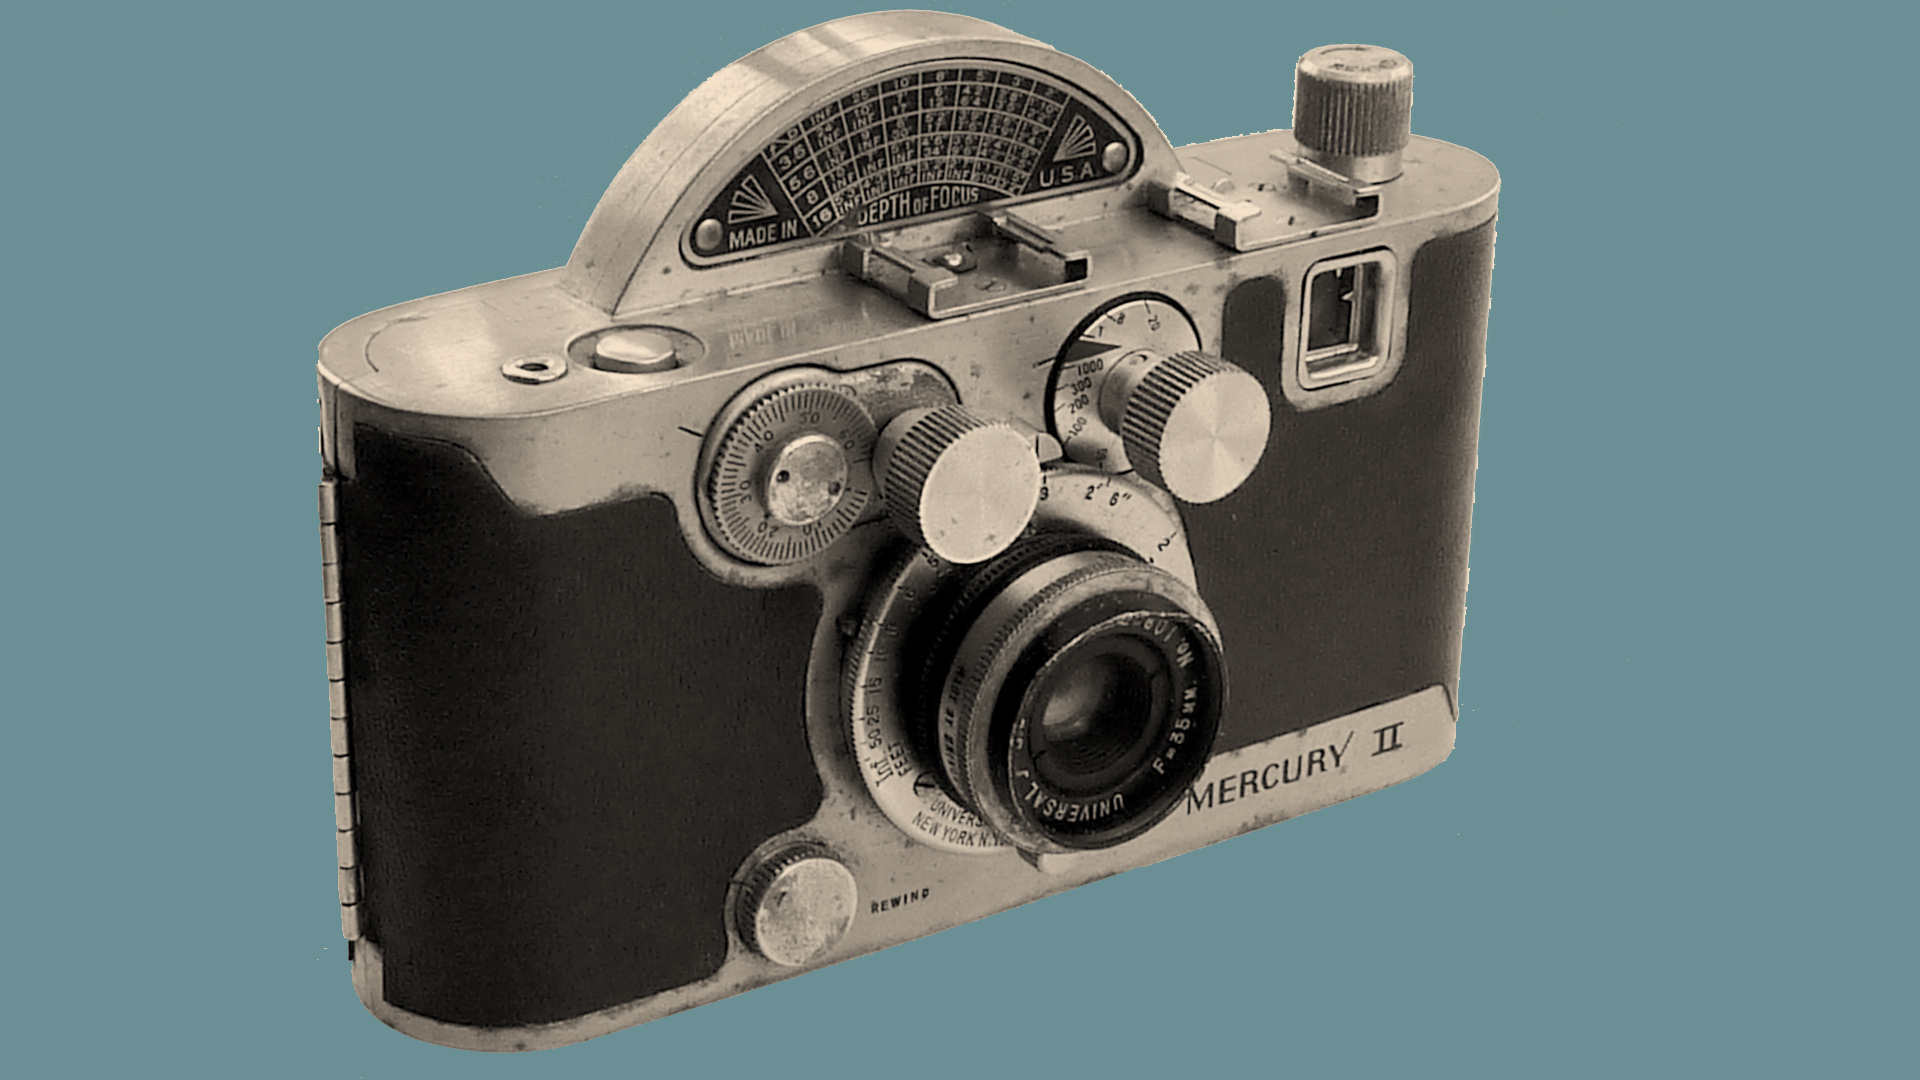 The front of the Mercury II camera on a blue background